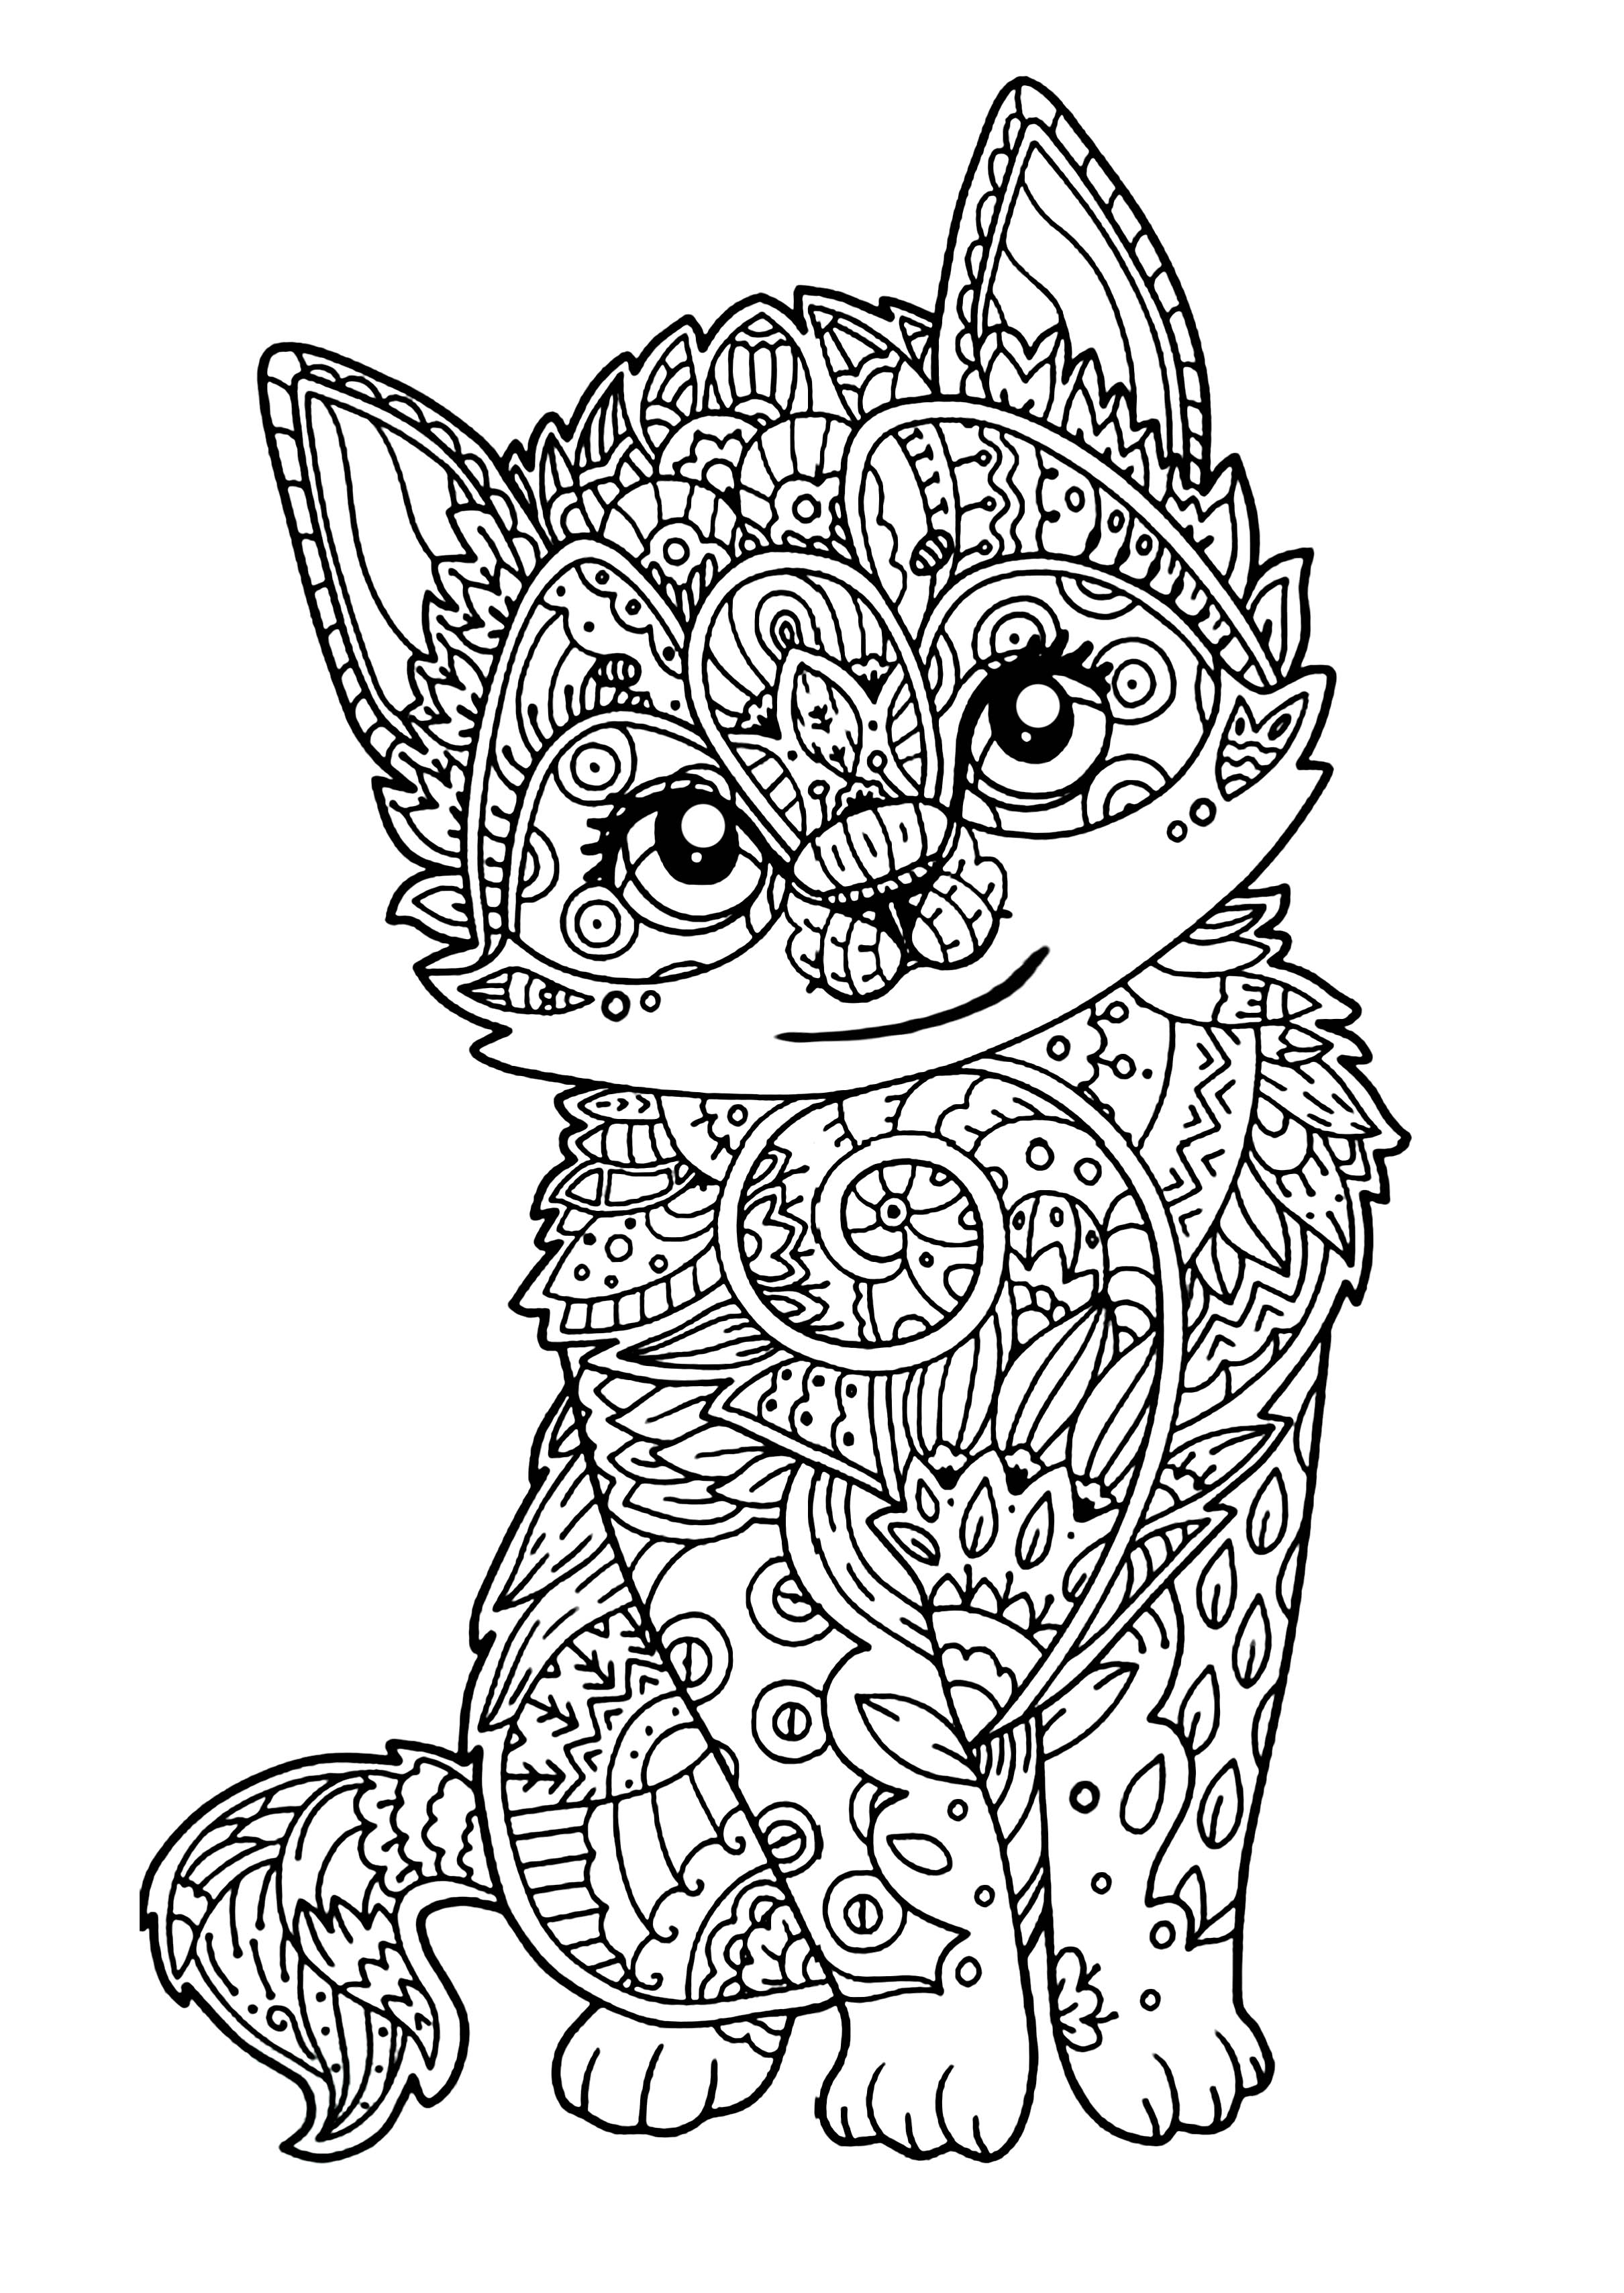 adult coloring pages cat Cute kitten   Cats Adult Coloring Pages adult coloring pages cat